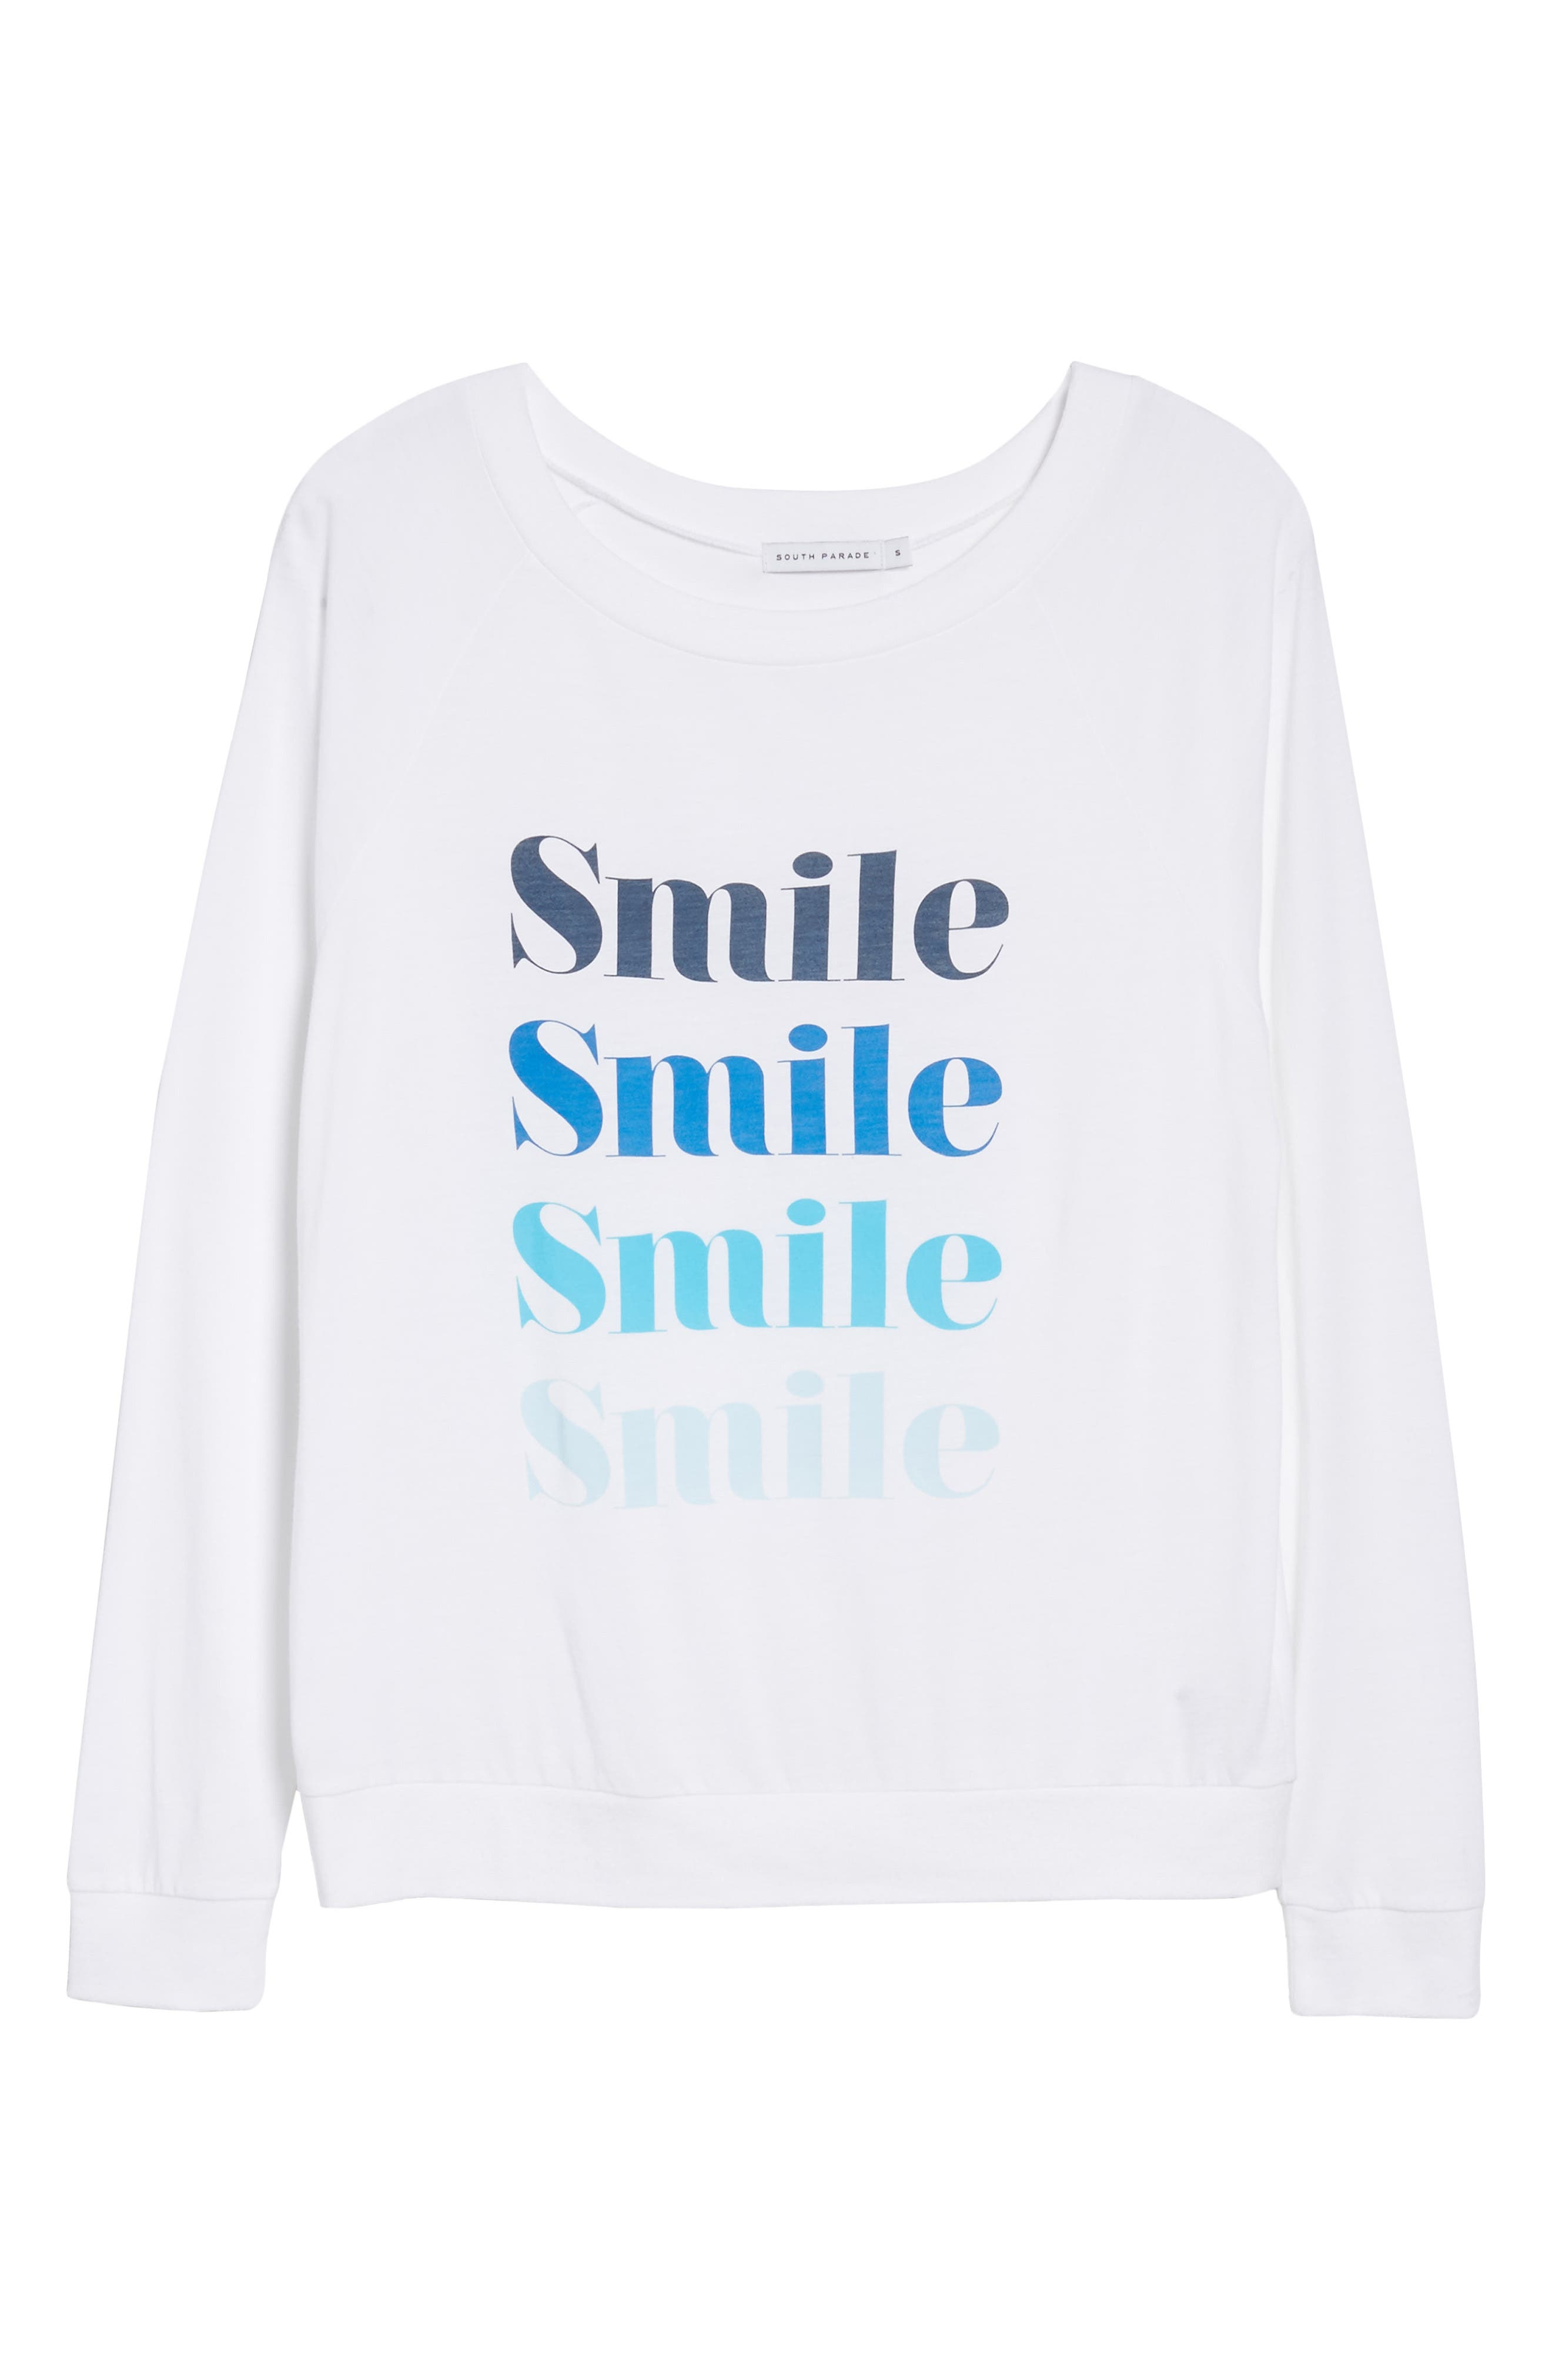 Candy - Smile Smile Pullover,                             Alternate thumbnail 6, color,                             100